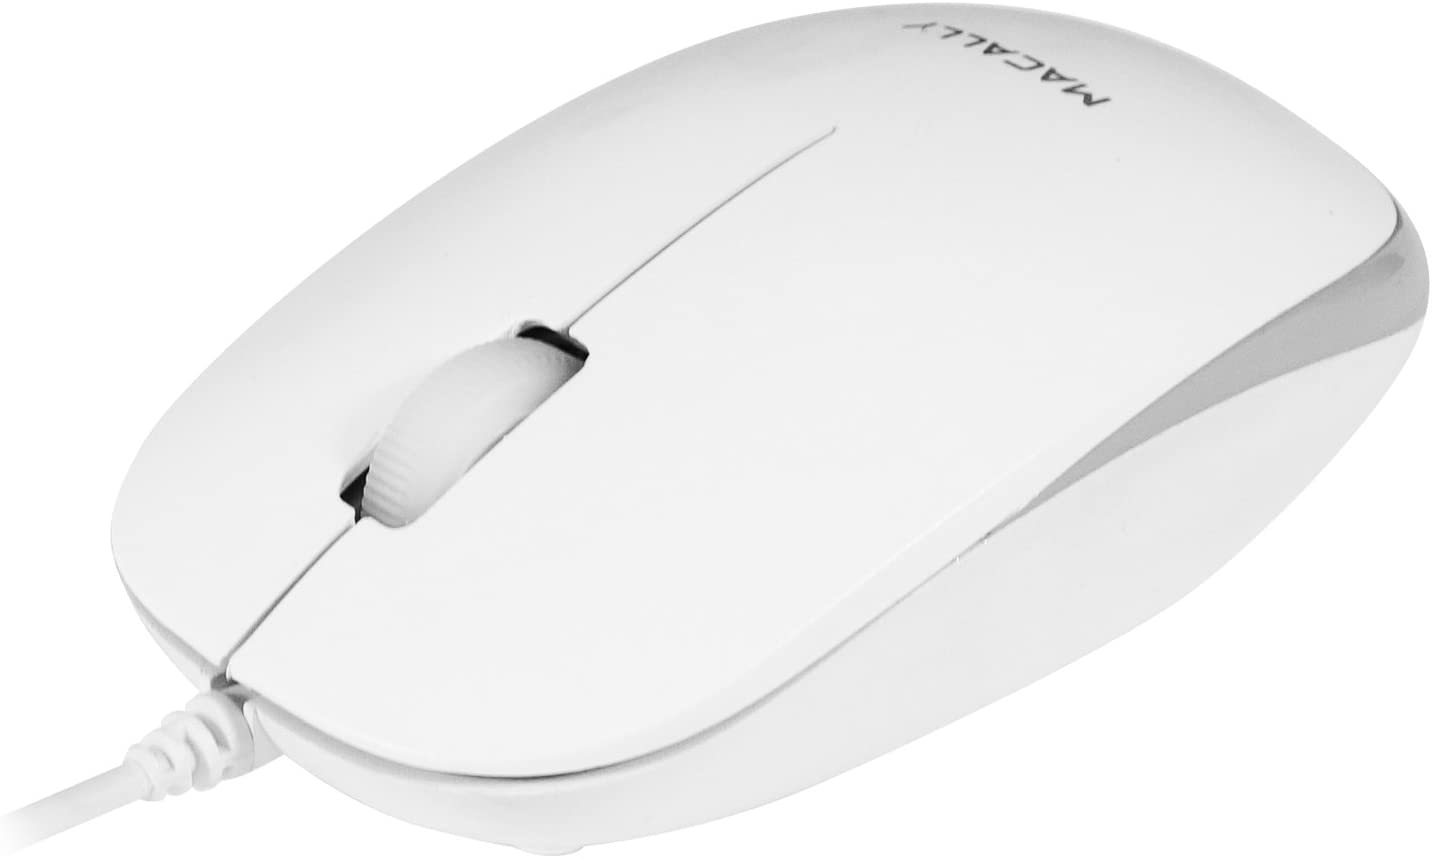 Macally USB Wired Computer Mouse with 3 Button, Scroll Wheel, 5 Foot Long Corded, Compatible with Windows PC, Apple Macbook Pro/Air, iMac, Mac Mini, Laptops (White)